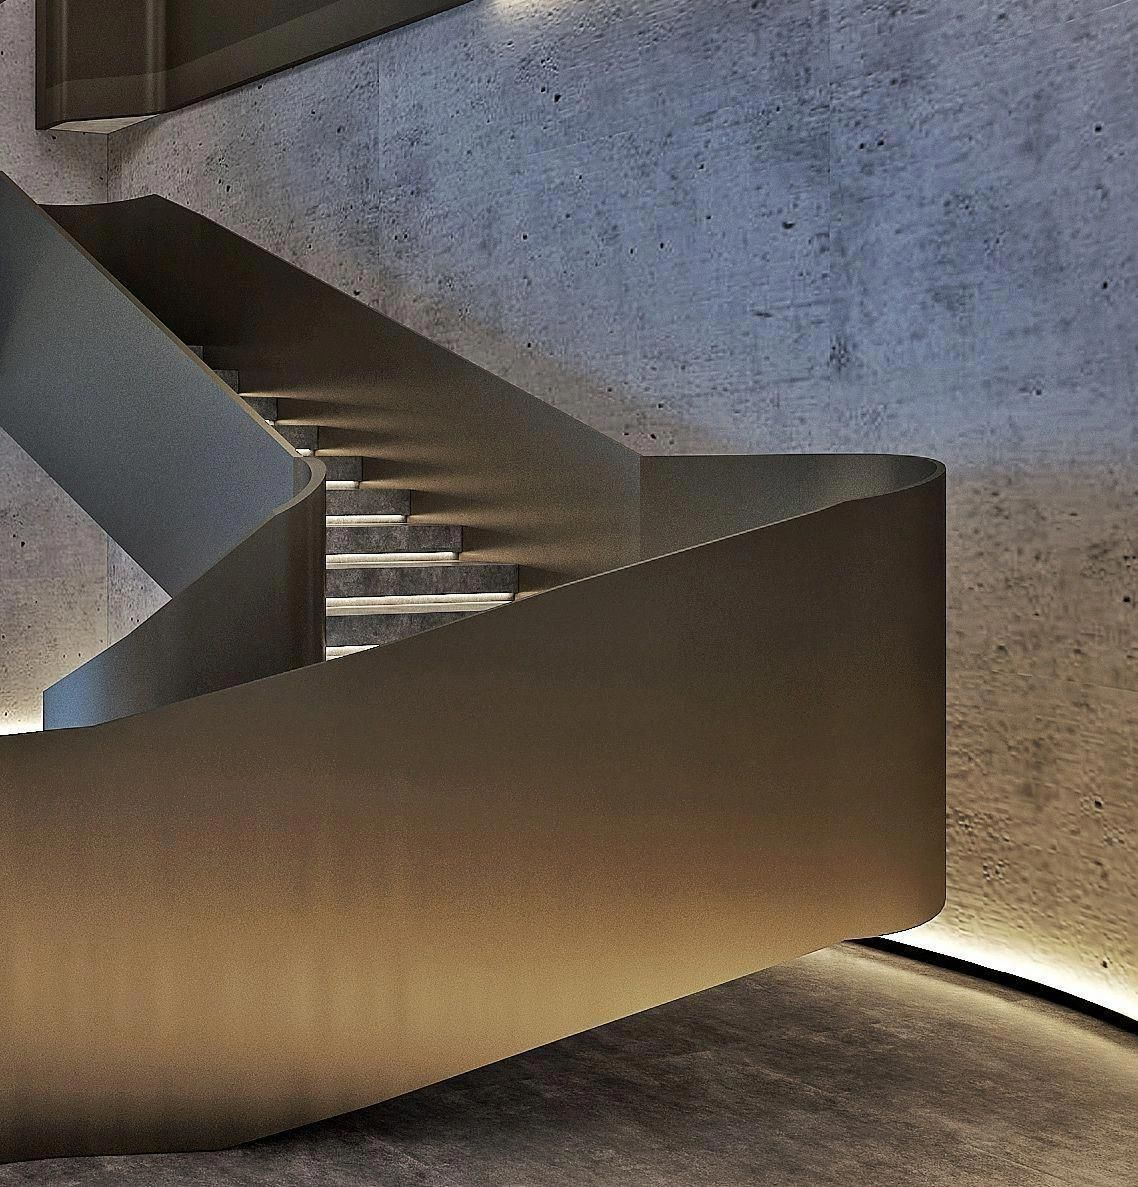 Inspirational Stairs Design: Inspirational Ideas That We Really Like! #staircaseideas